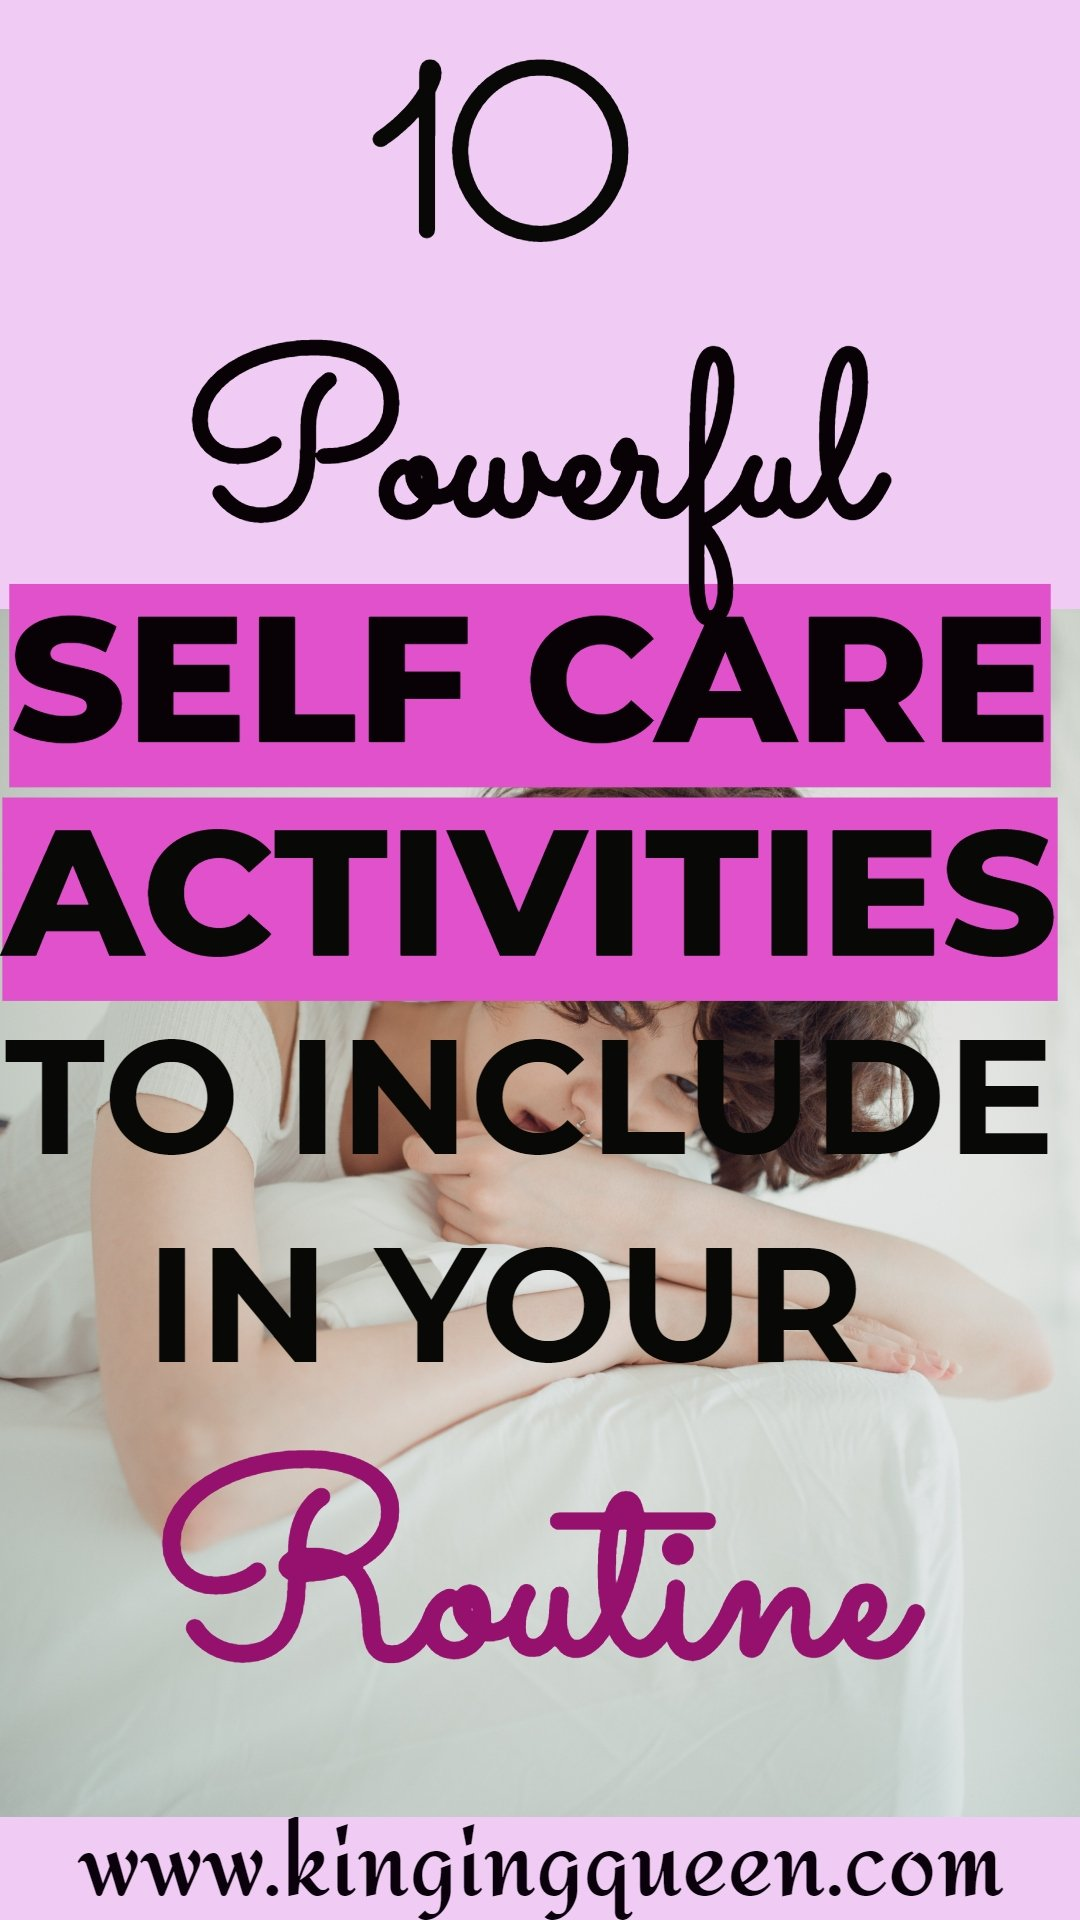 Graphic showing 10 Powerful Self Care Activities To Add To Your Routine